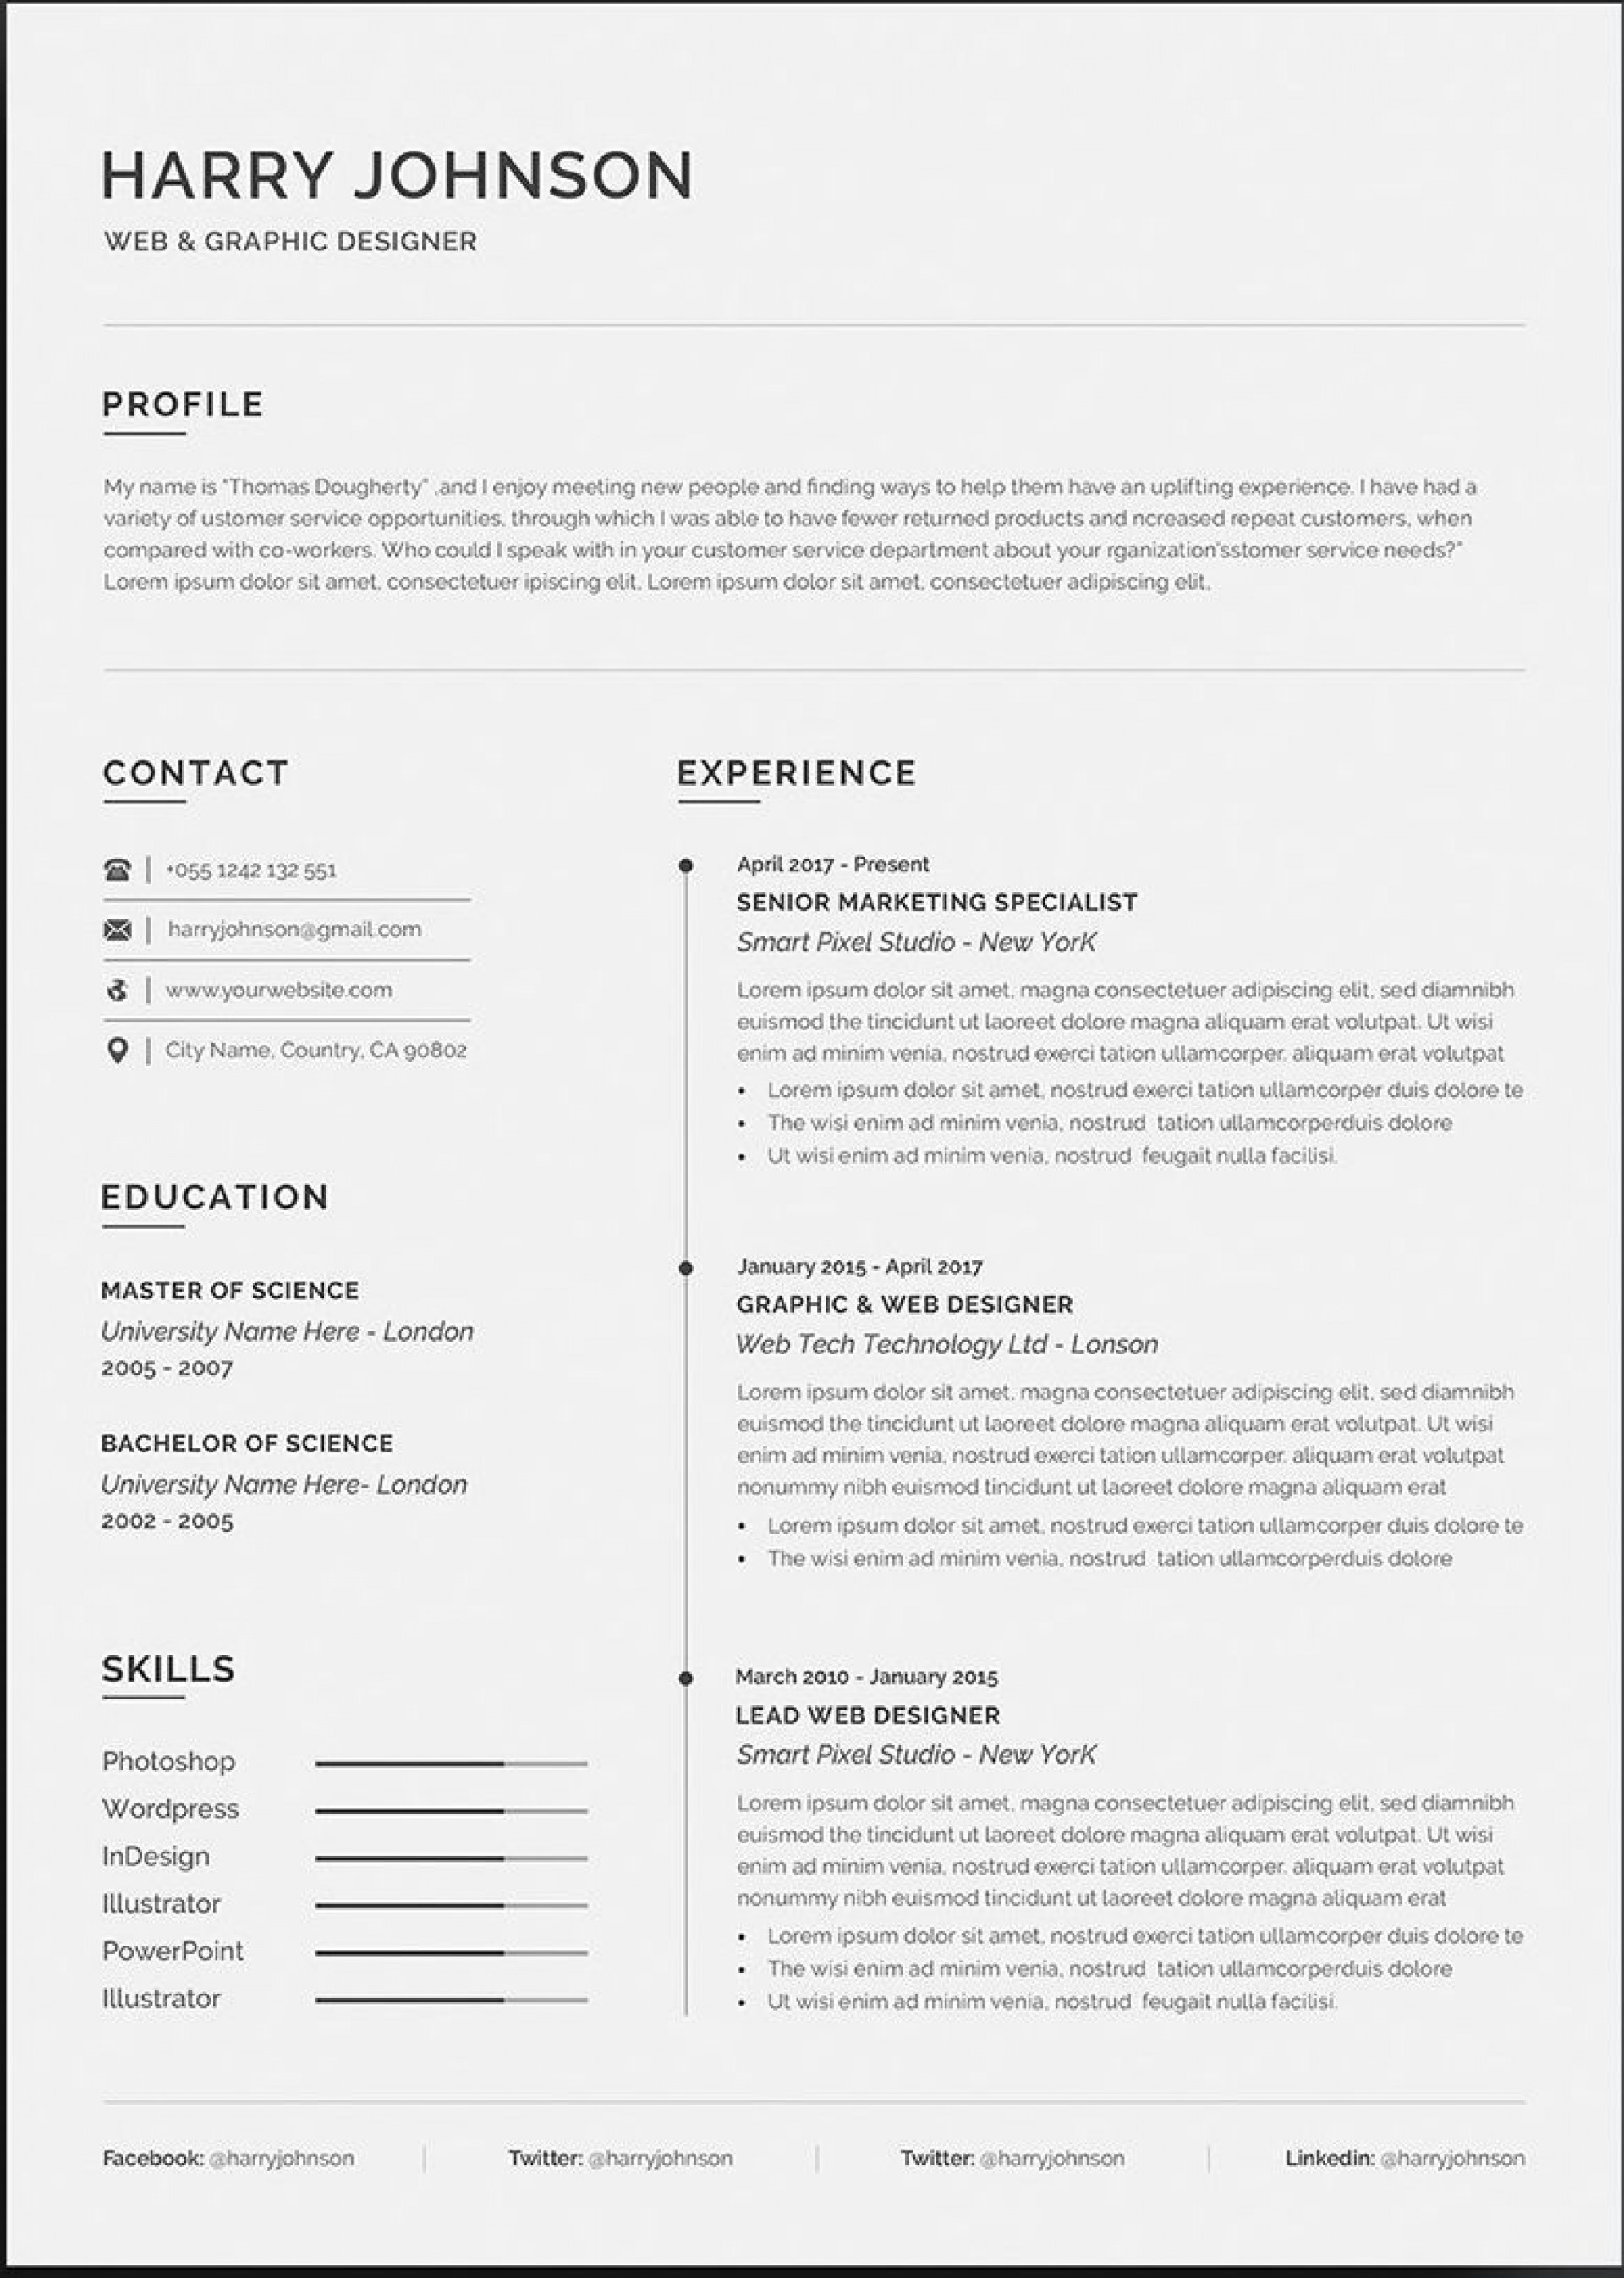 008 Simple Resume Template On Word Idea  2007 Download 2016 How To Get 20101920